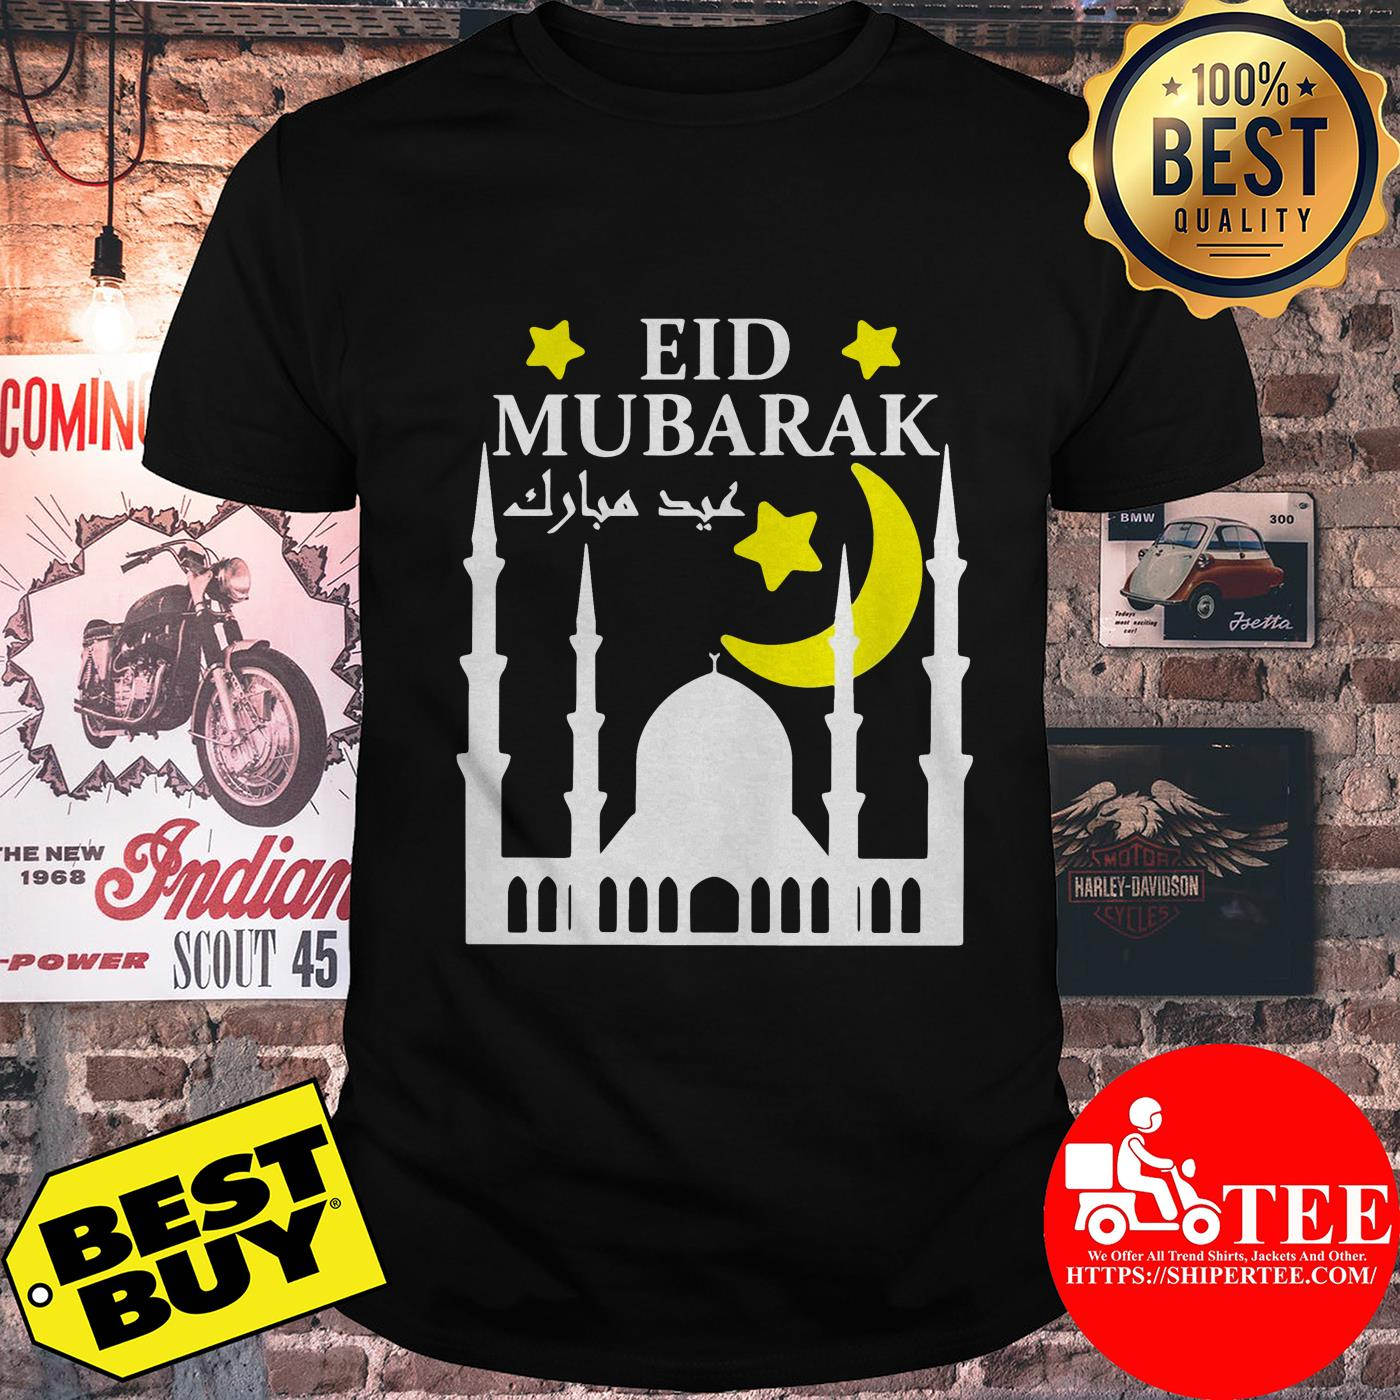 Eid Mubarak For Eid Al-Fitr Or Eid Al-Adha Happy Eid Day Shirt